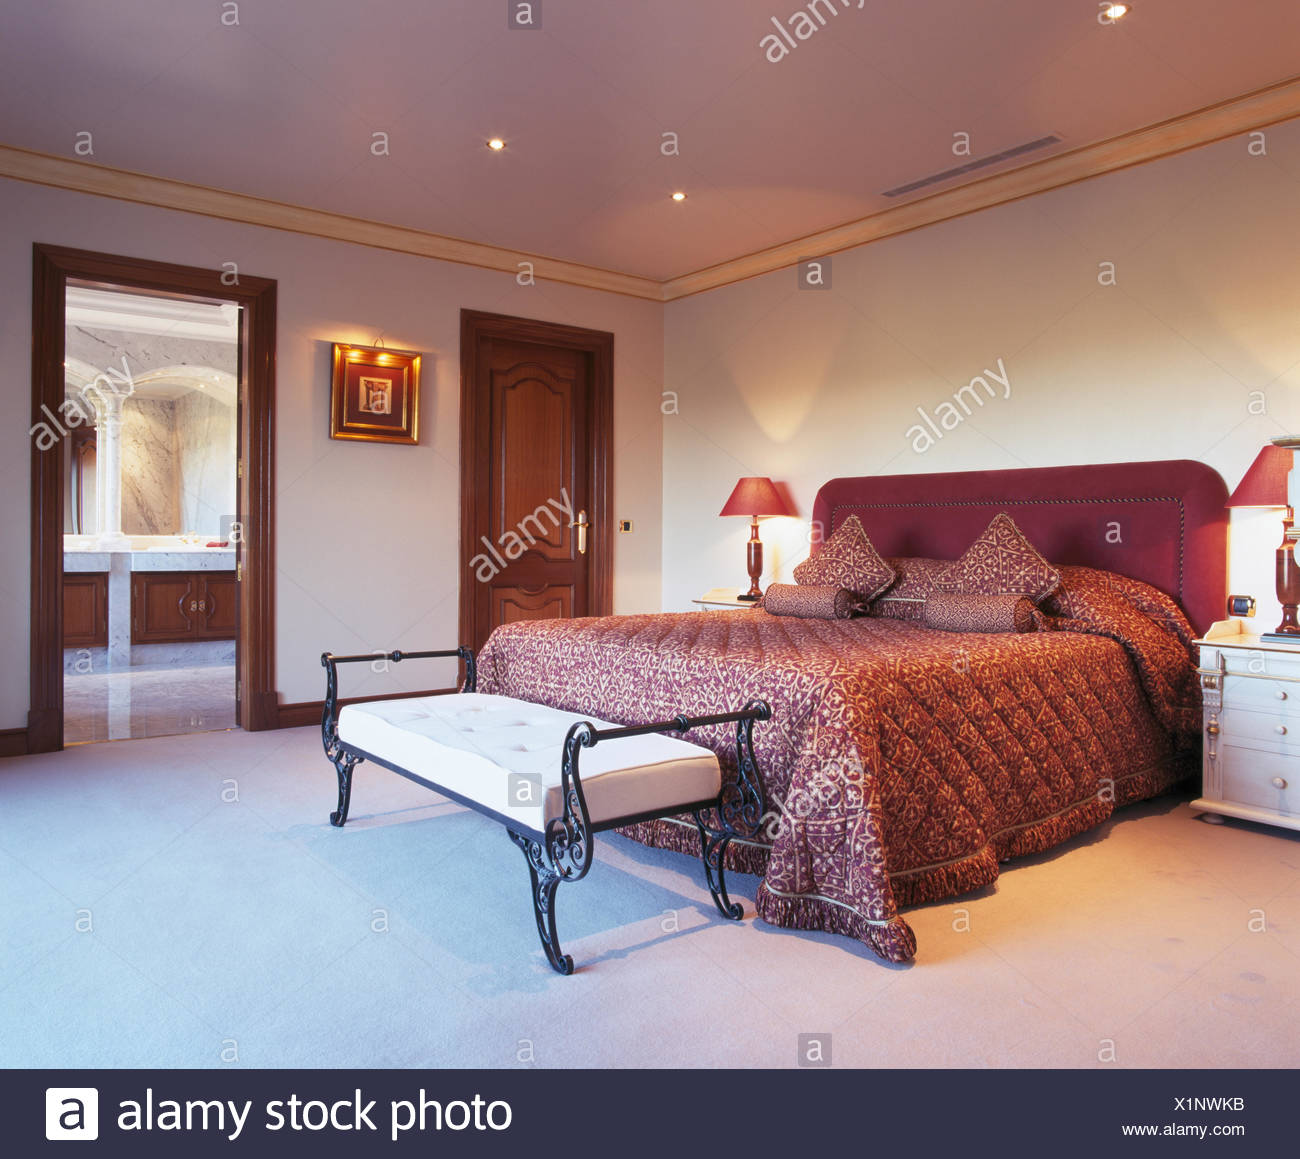 Deep Pink Quilt And Cushions On Bed In Spanish Bedroom With White